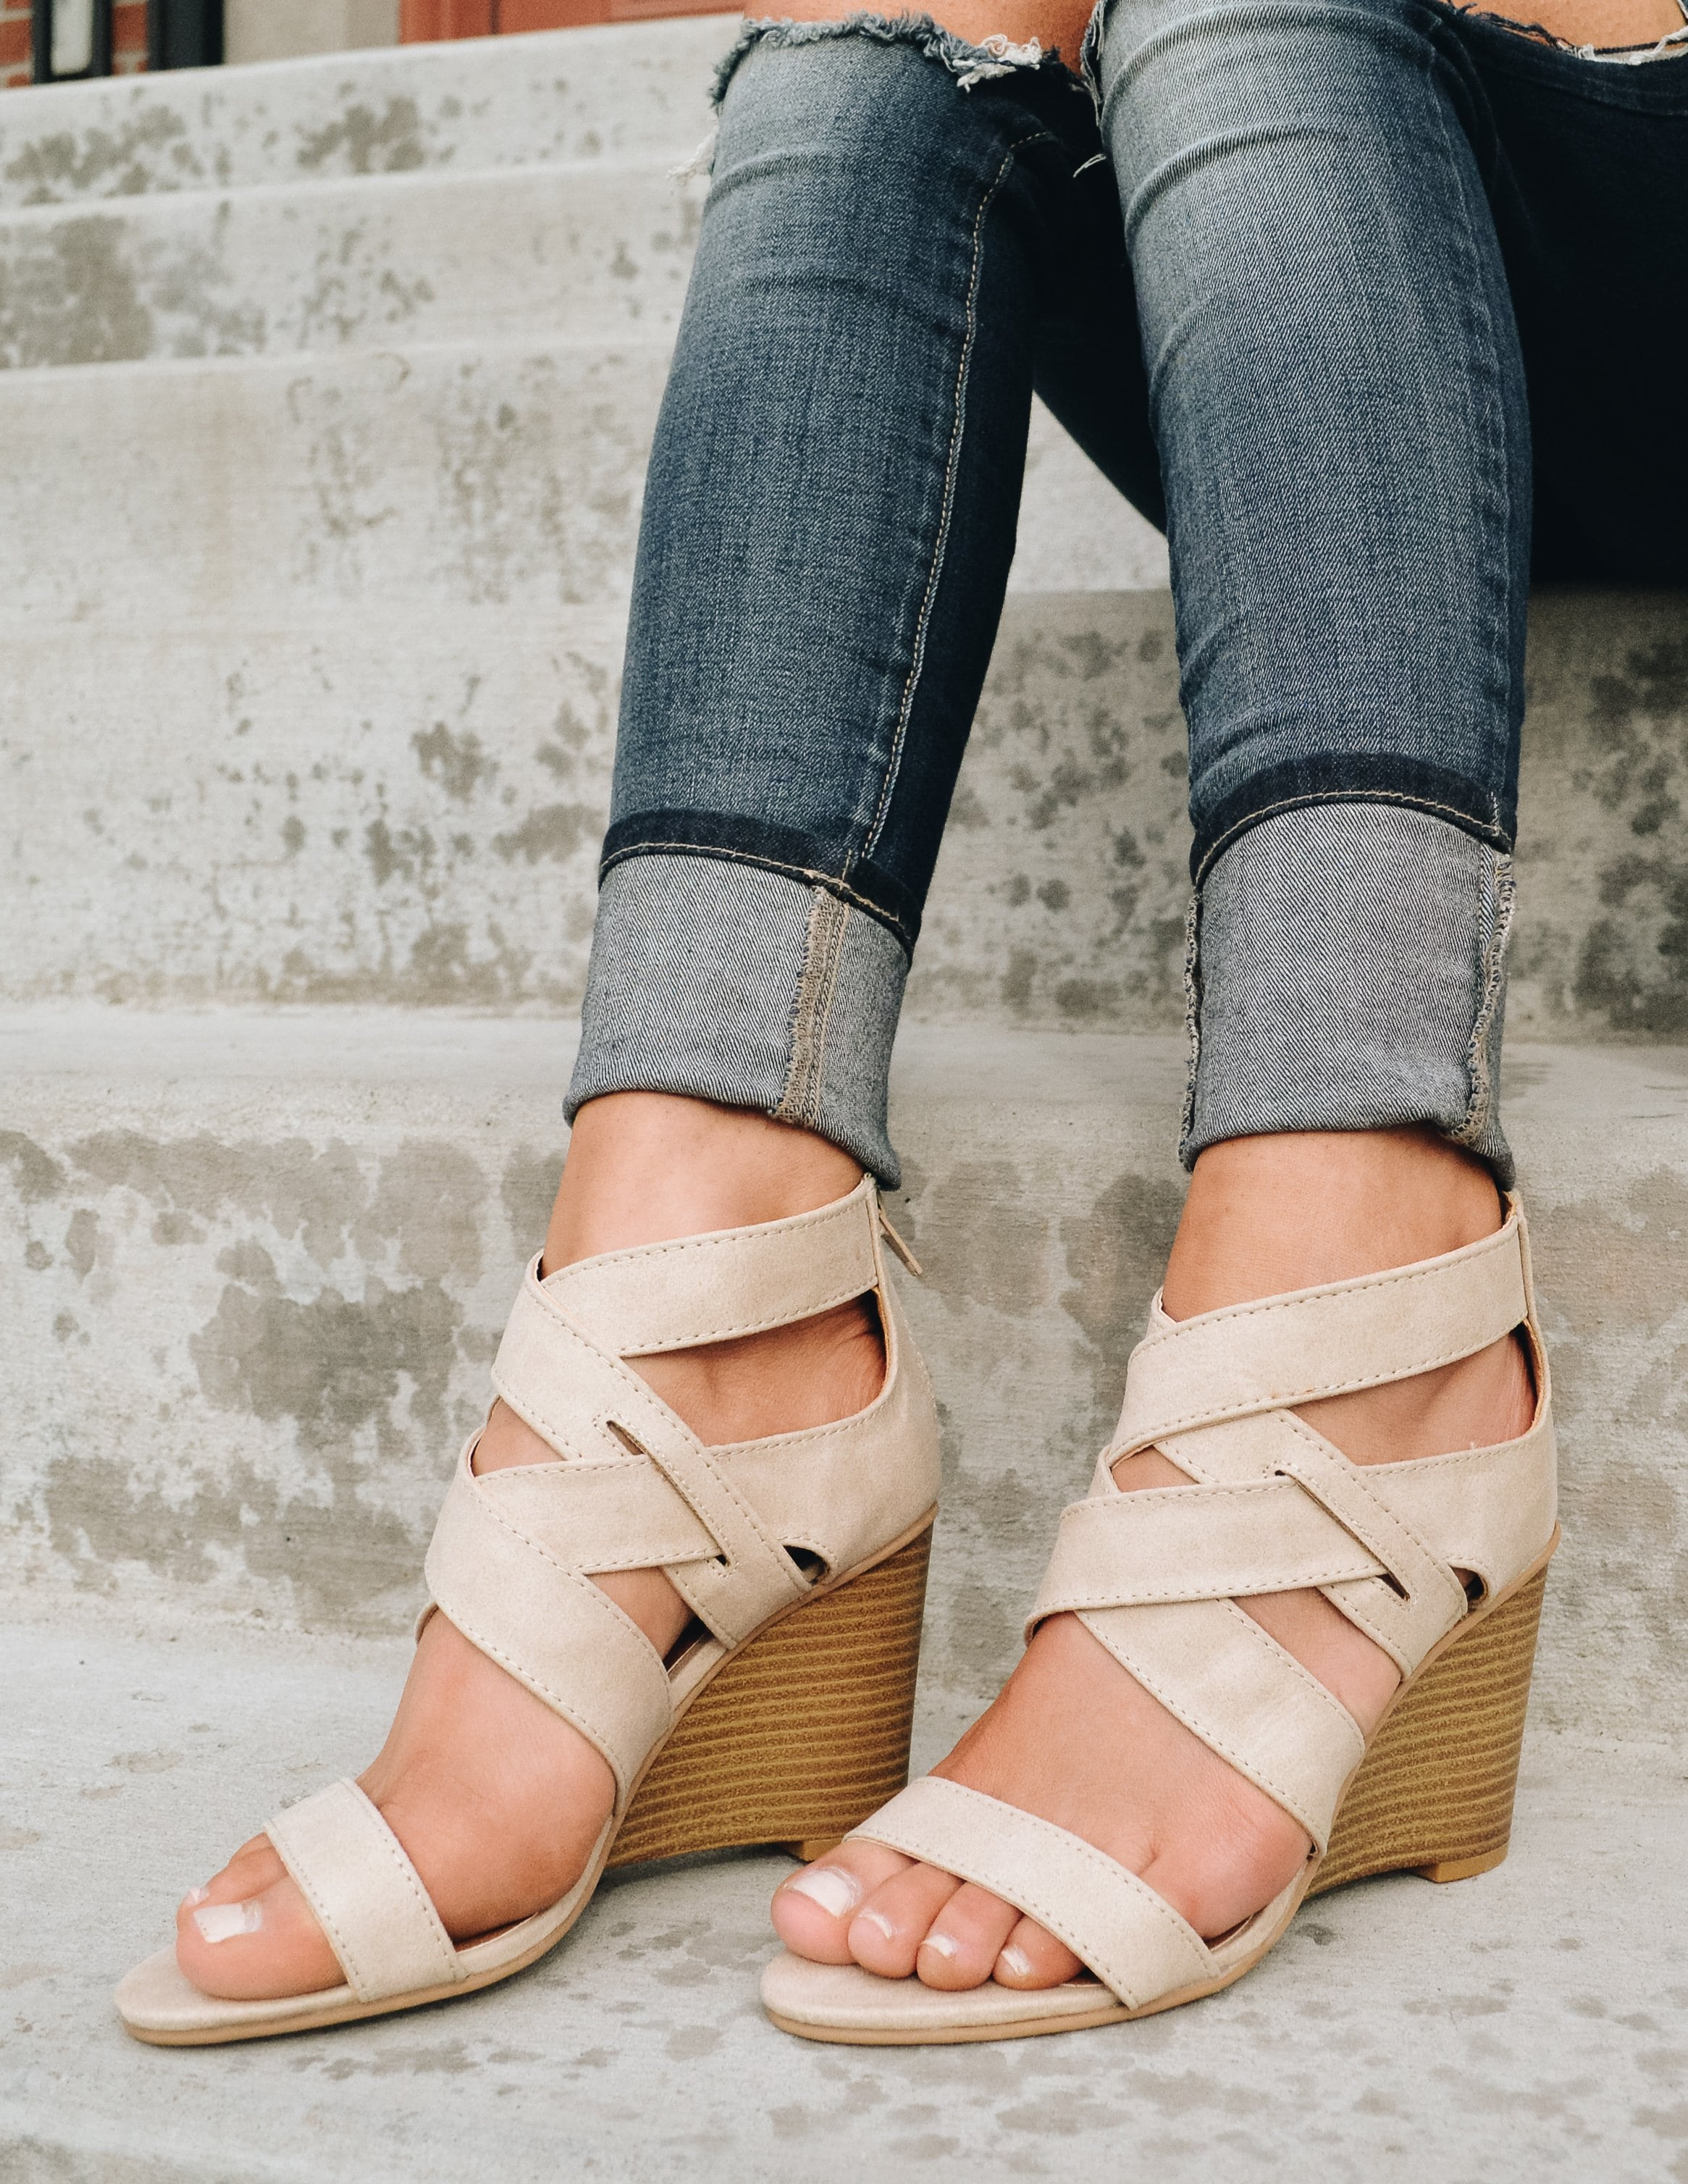 Beige colored strappy wedges with faux stacked wood wedge heel